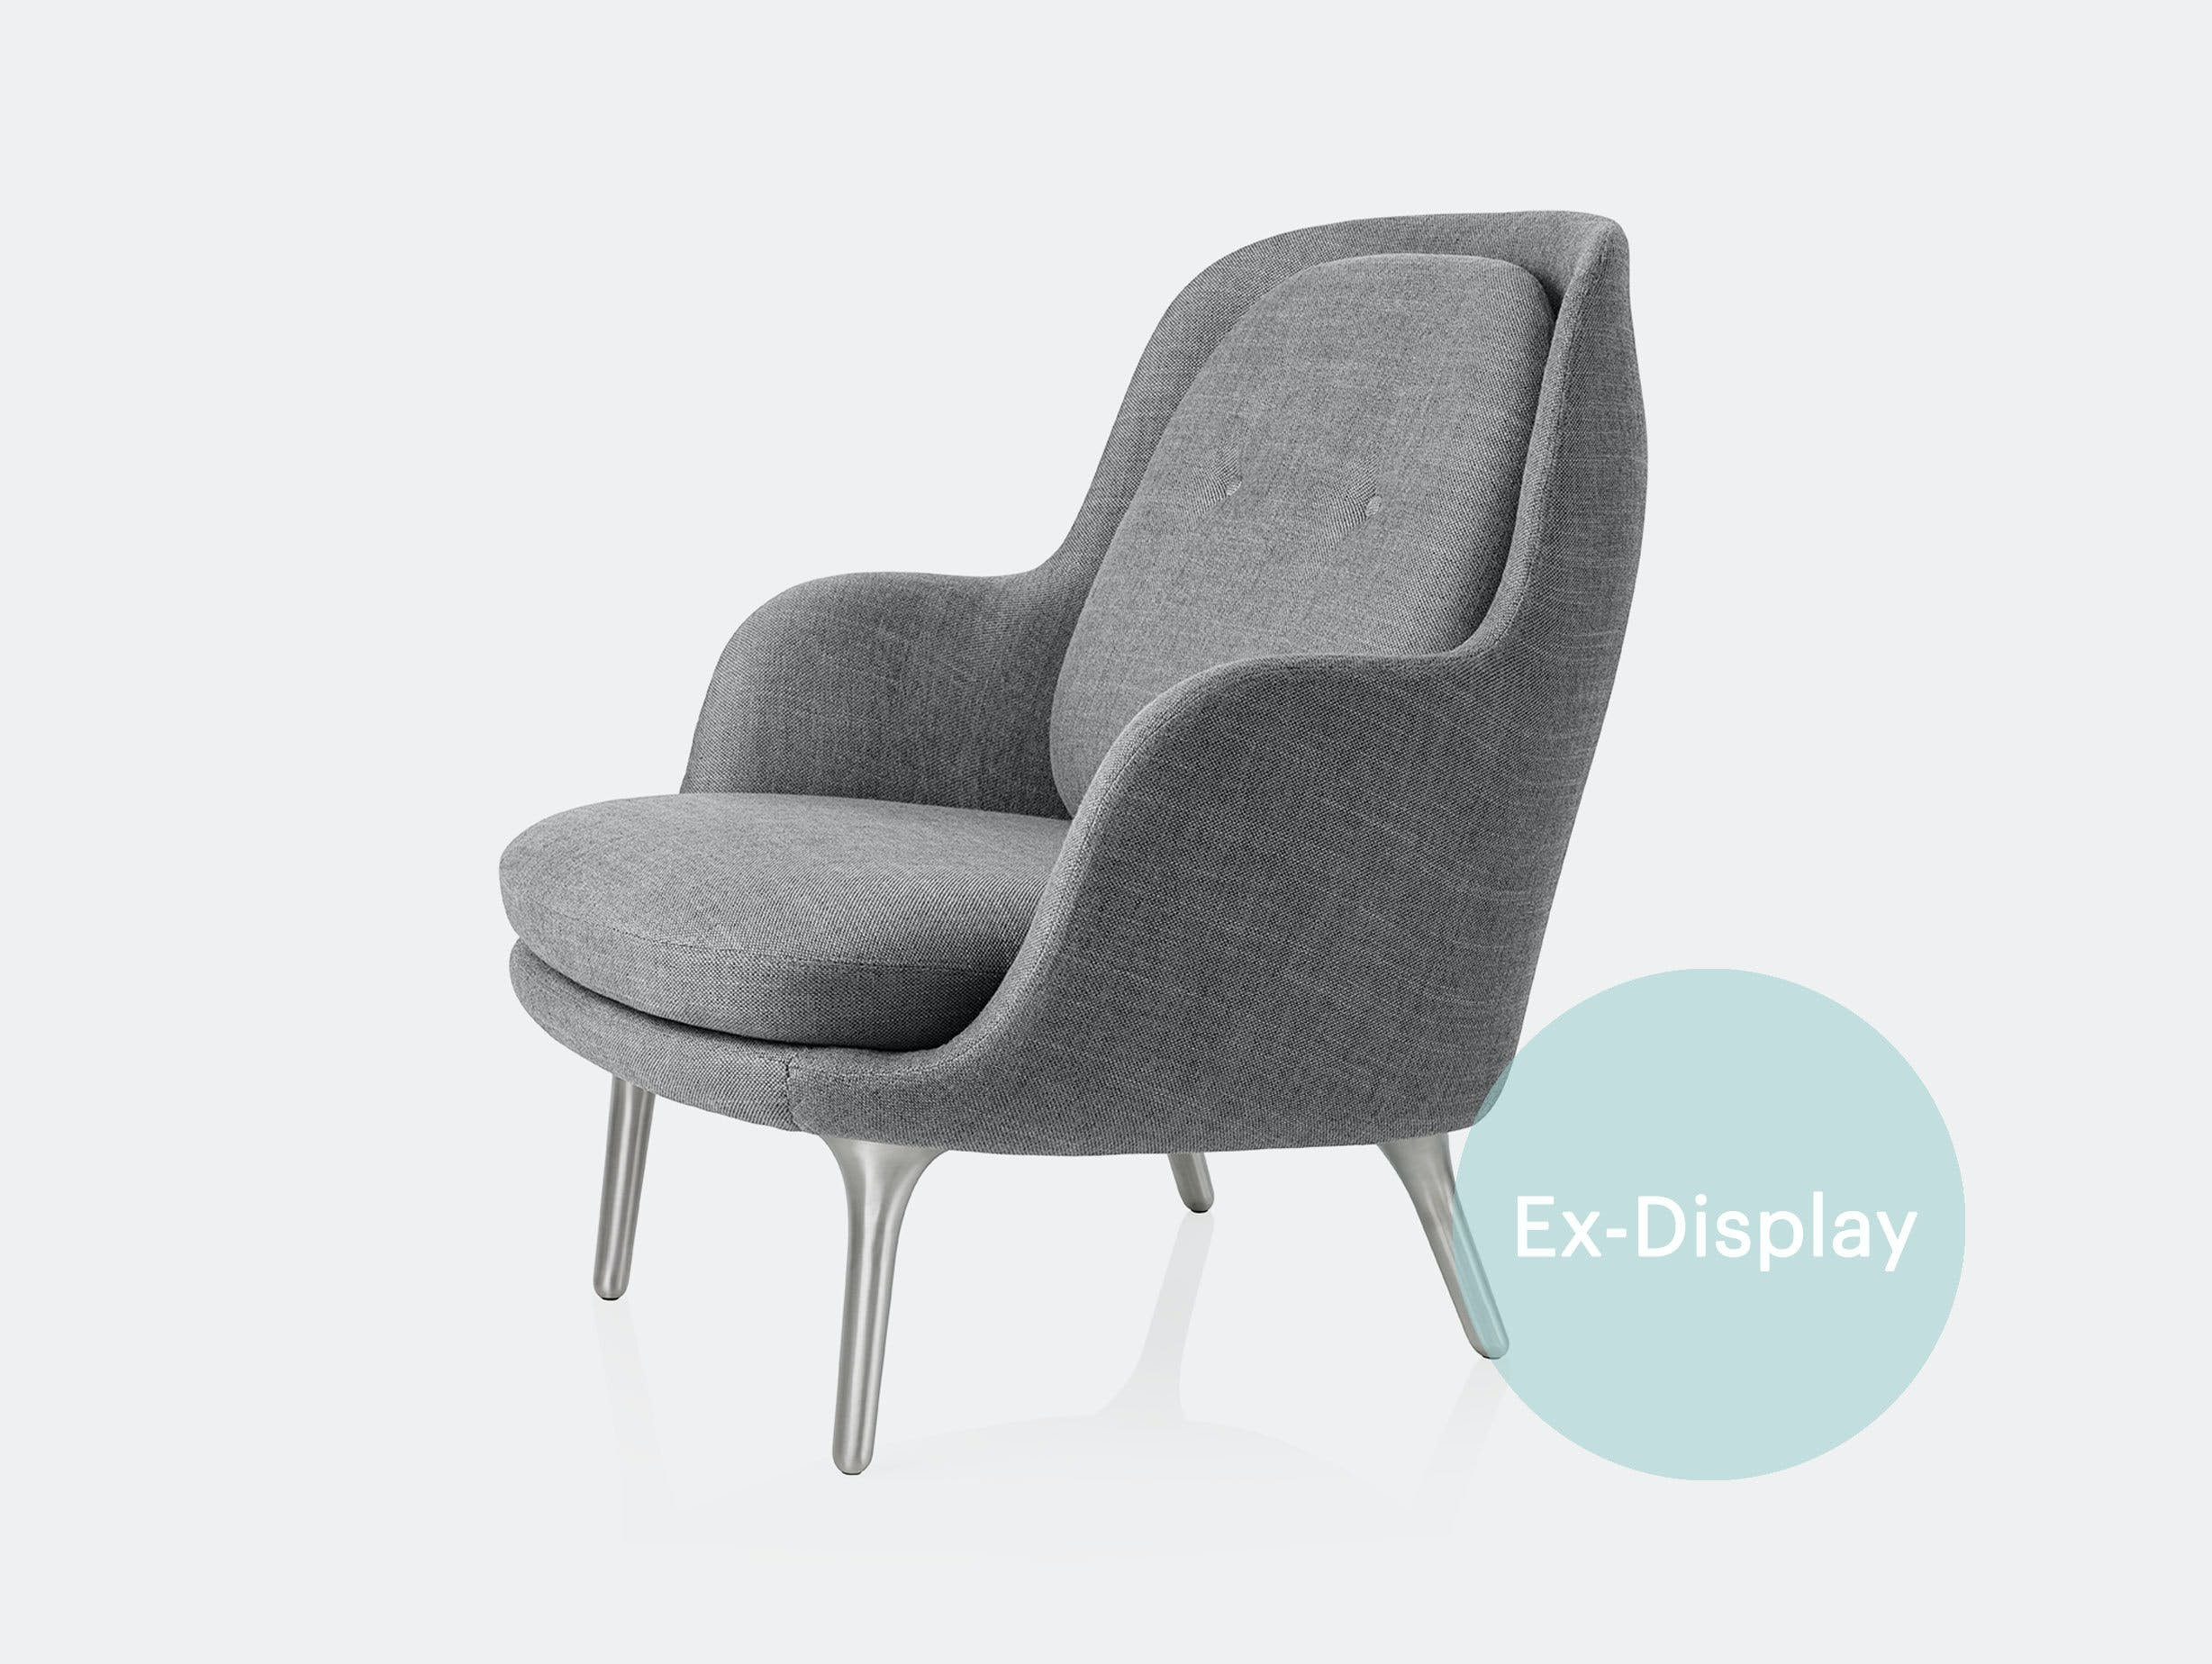 Fri Easy Chair / 26% off at £1738 image